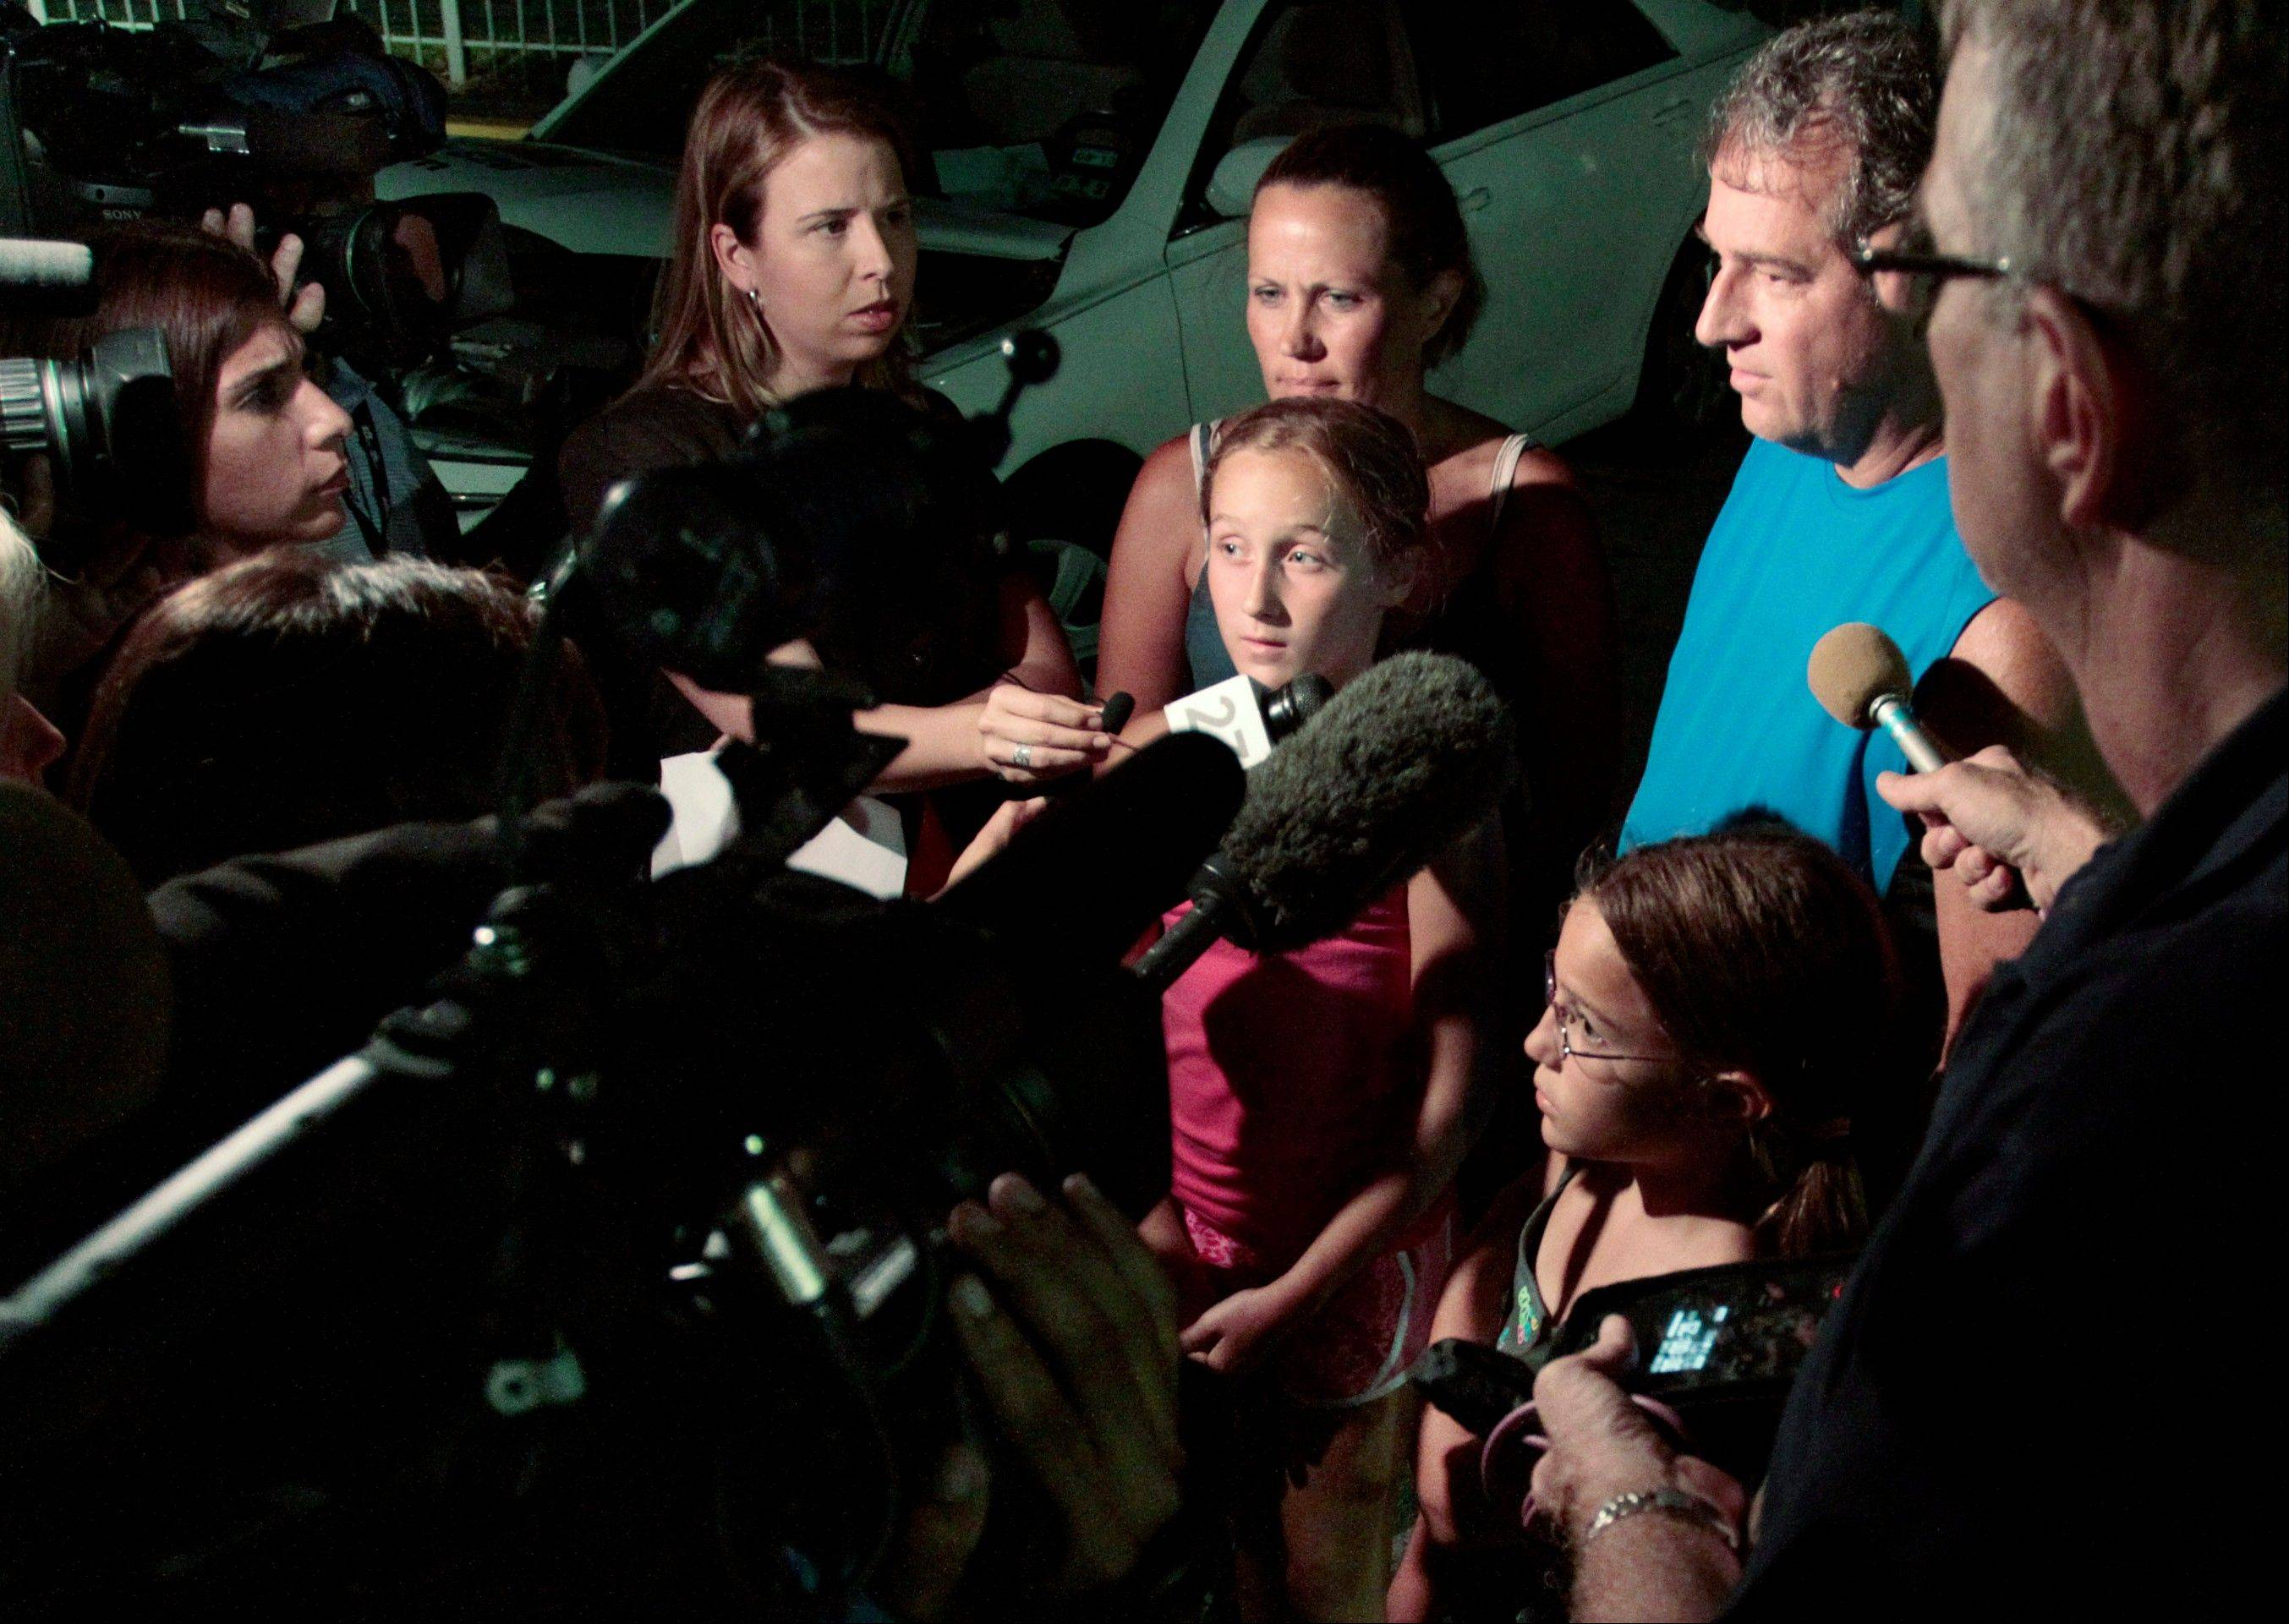 Associated PressMembers of the Putnam family, who were present when a woman died after falling from a roller coaster, are interviewed by reporters at Six Flags Over Texas in Arlington, Texas.